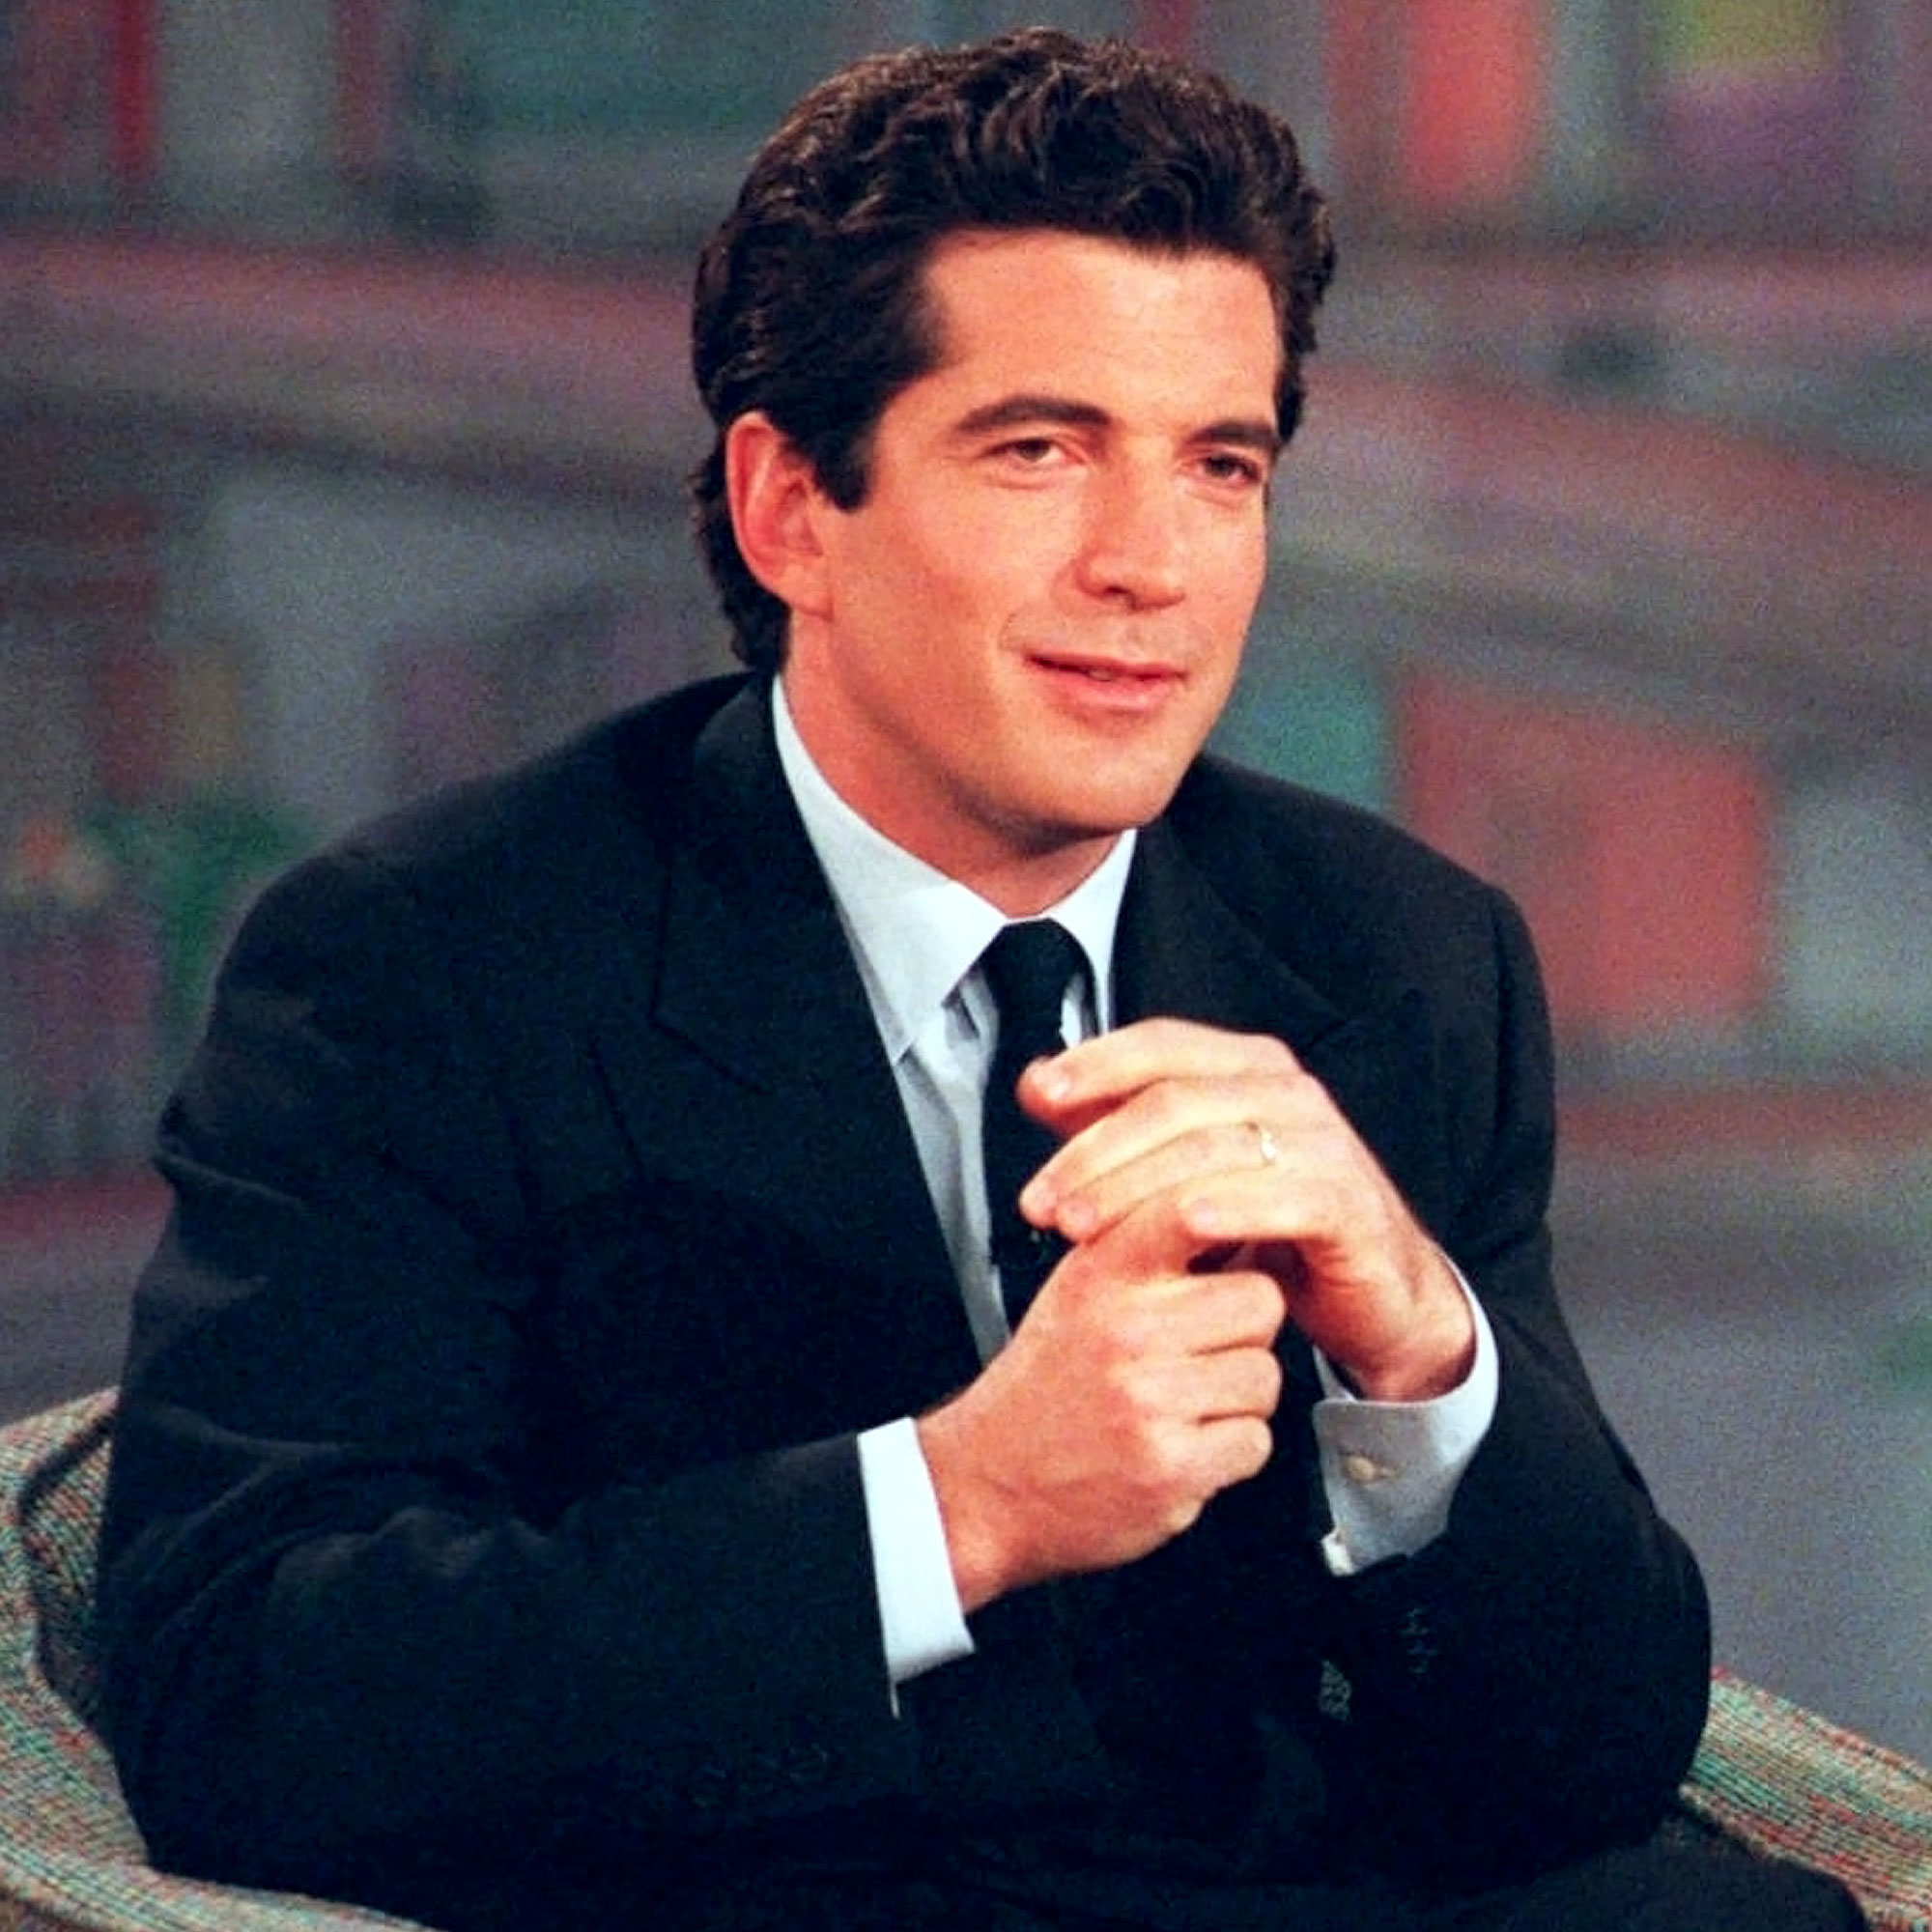 JFK Jr.'s Career and Marriage Were 'Weighing' On Him Before Plane Crash: He 'May Have Had a Death Wish'